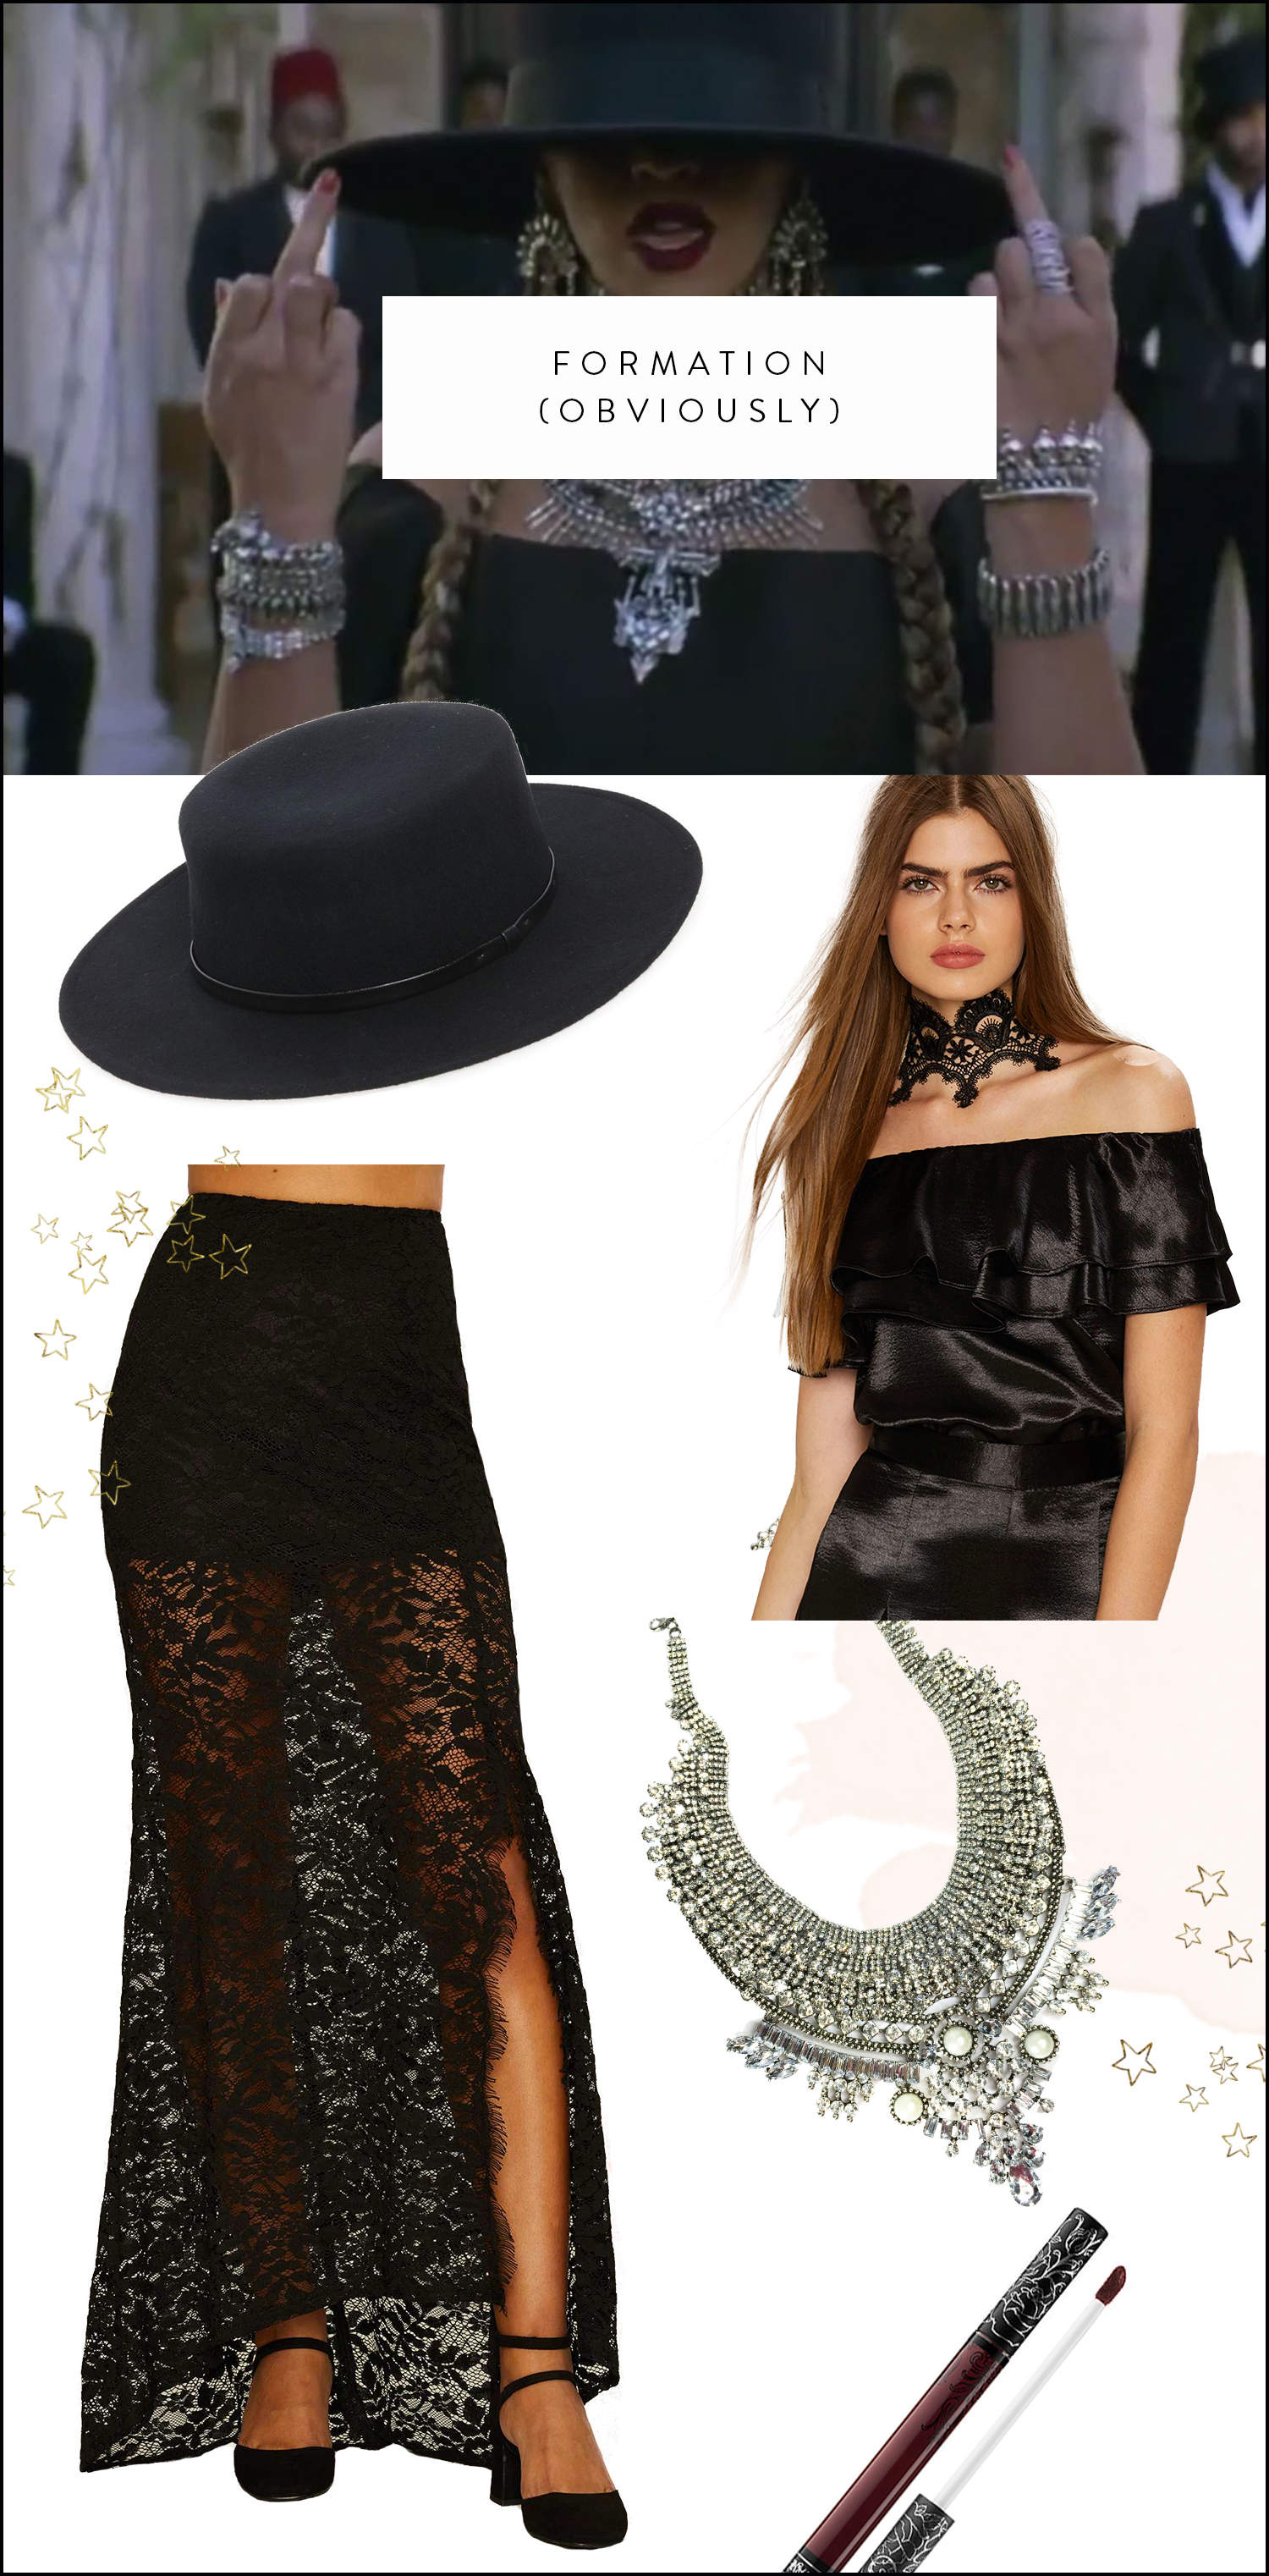 last minute halloween costumes, fashionlush, fashionable halloween costumes